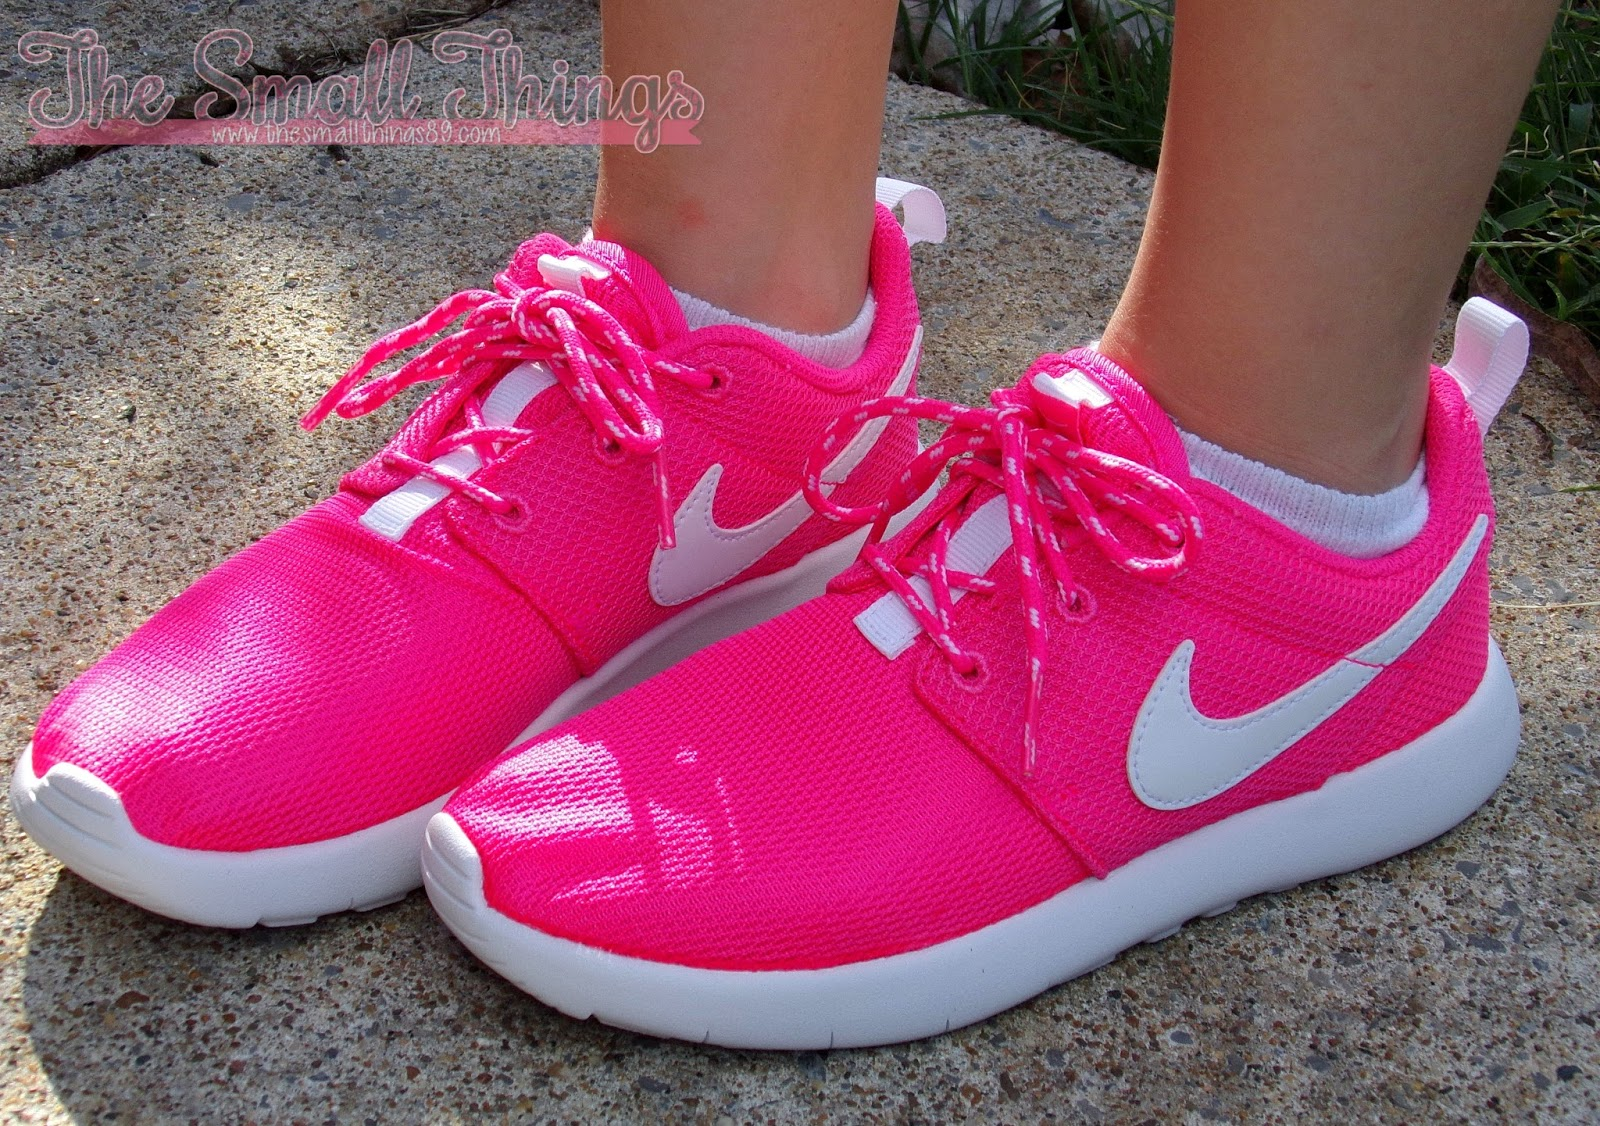 7e27c71b3f Kids Foot Locker- Back To School In Style With Nike Roche One Shoes!   GiftGuide2015